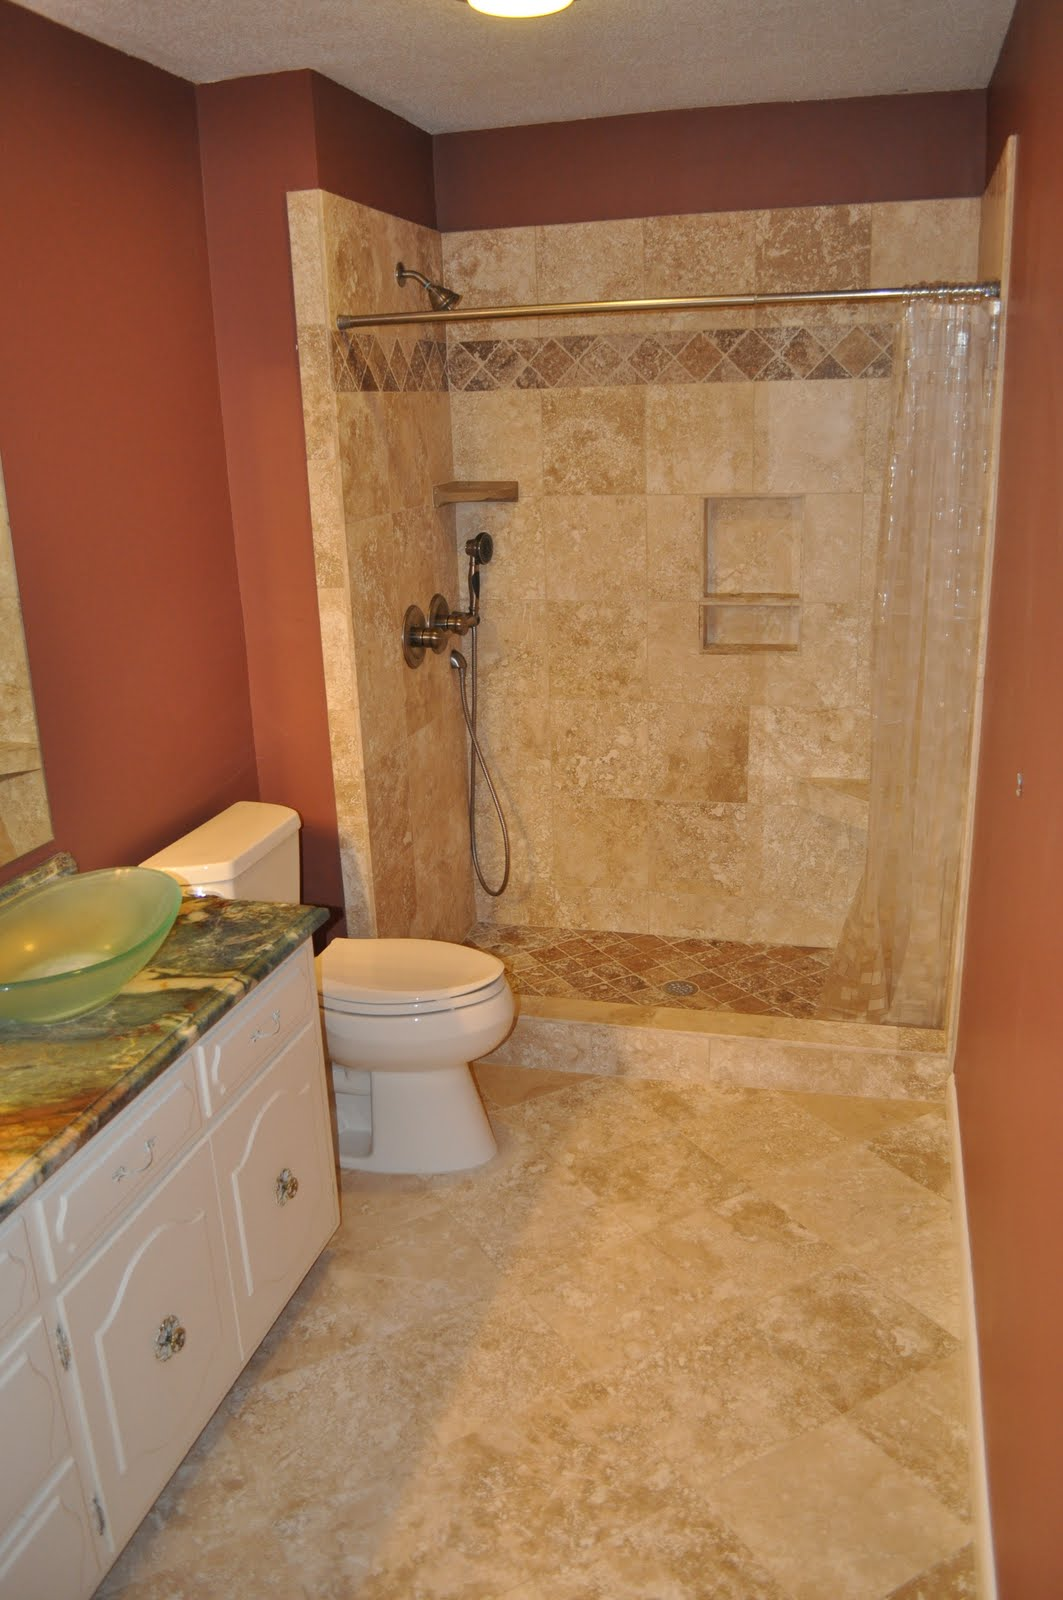 bathroom remodel cost and considerationscolella construction inc cayman painters islands bath reno - Bathroom Remodeling Design